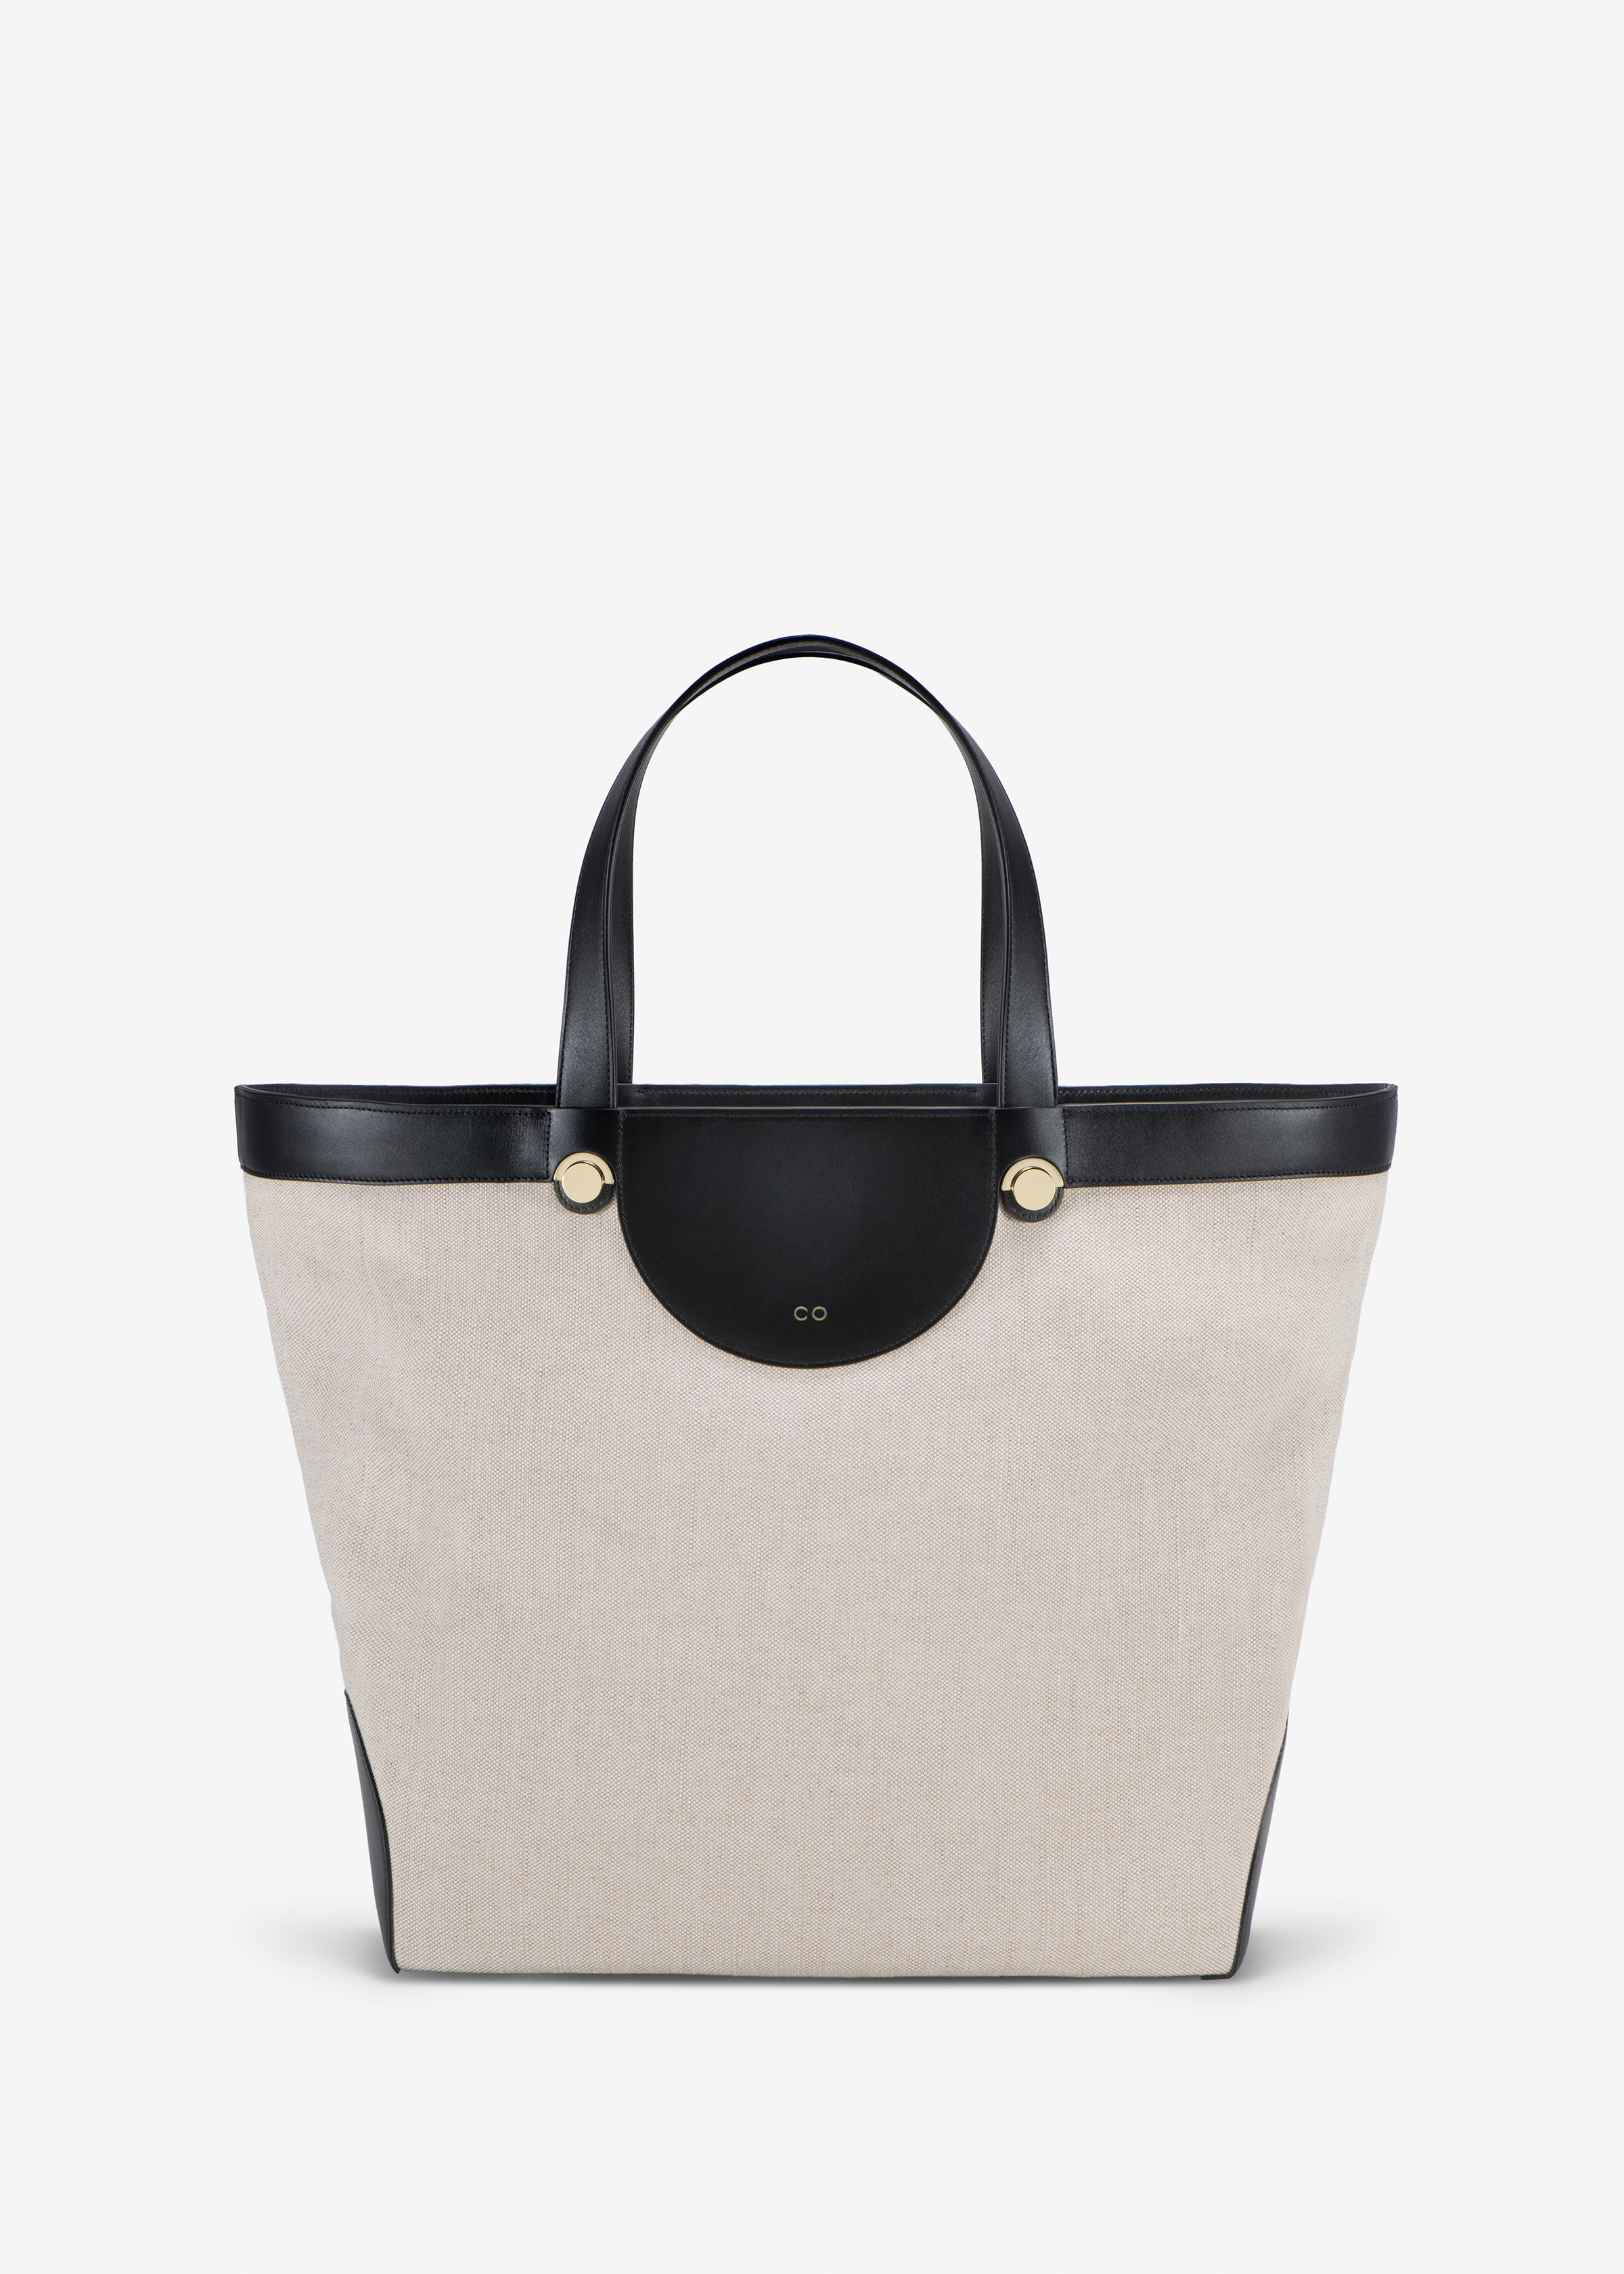 Collector Tote in Linen and Leather in Natural / Black by Co Collections